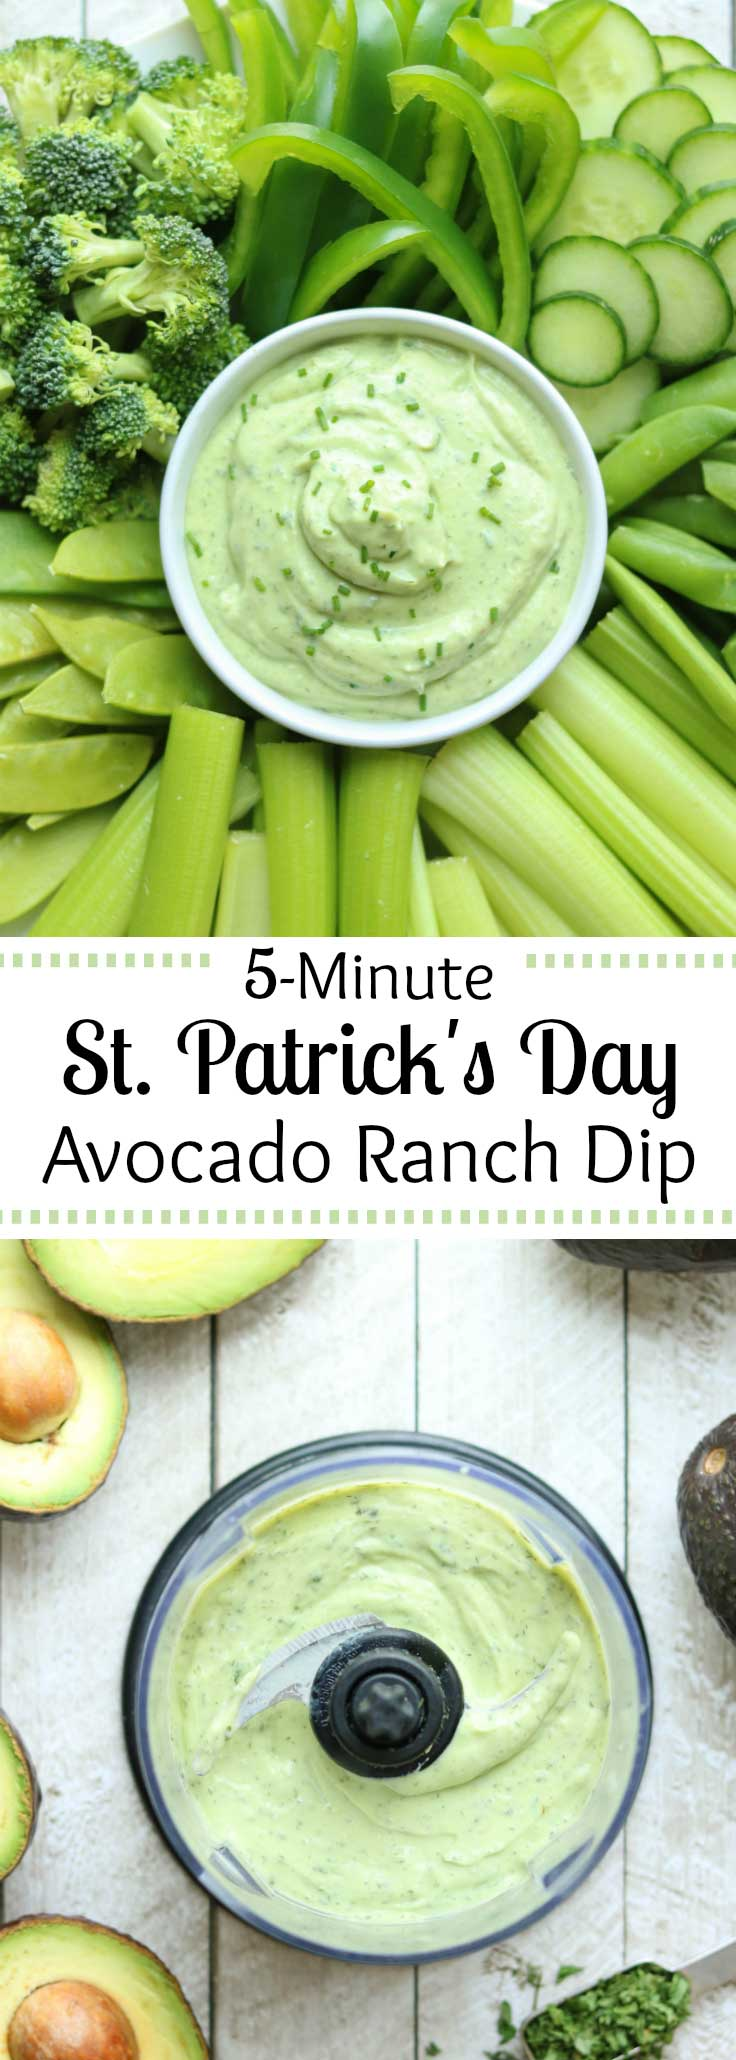 A perfect St. Patrick's Day appetizer! Surround our pretty green Avocado Ranch Dip with festive green veggies! And, since it's ready in just minutes, this appetizer recipe is great for busy hostesses and last-minute parties. So creamy and delicious, like a cross between traditional ranch dip and guacamole! #StPatricksDay #stpattysday #avocado #greekyogurt #appetizer #healthysnacks #appetizerfood #holidayrecipes #healthyrecipes #ranchdip #veggiedip | www.TwoHealthyKitchens.com